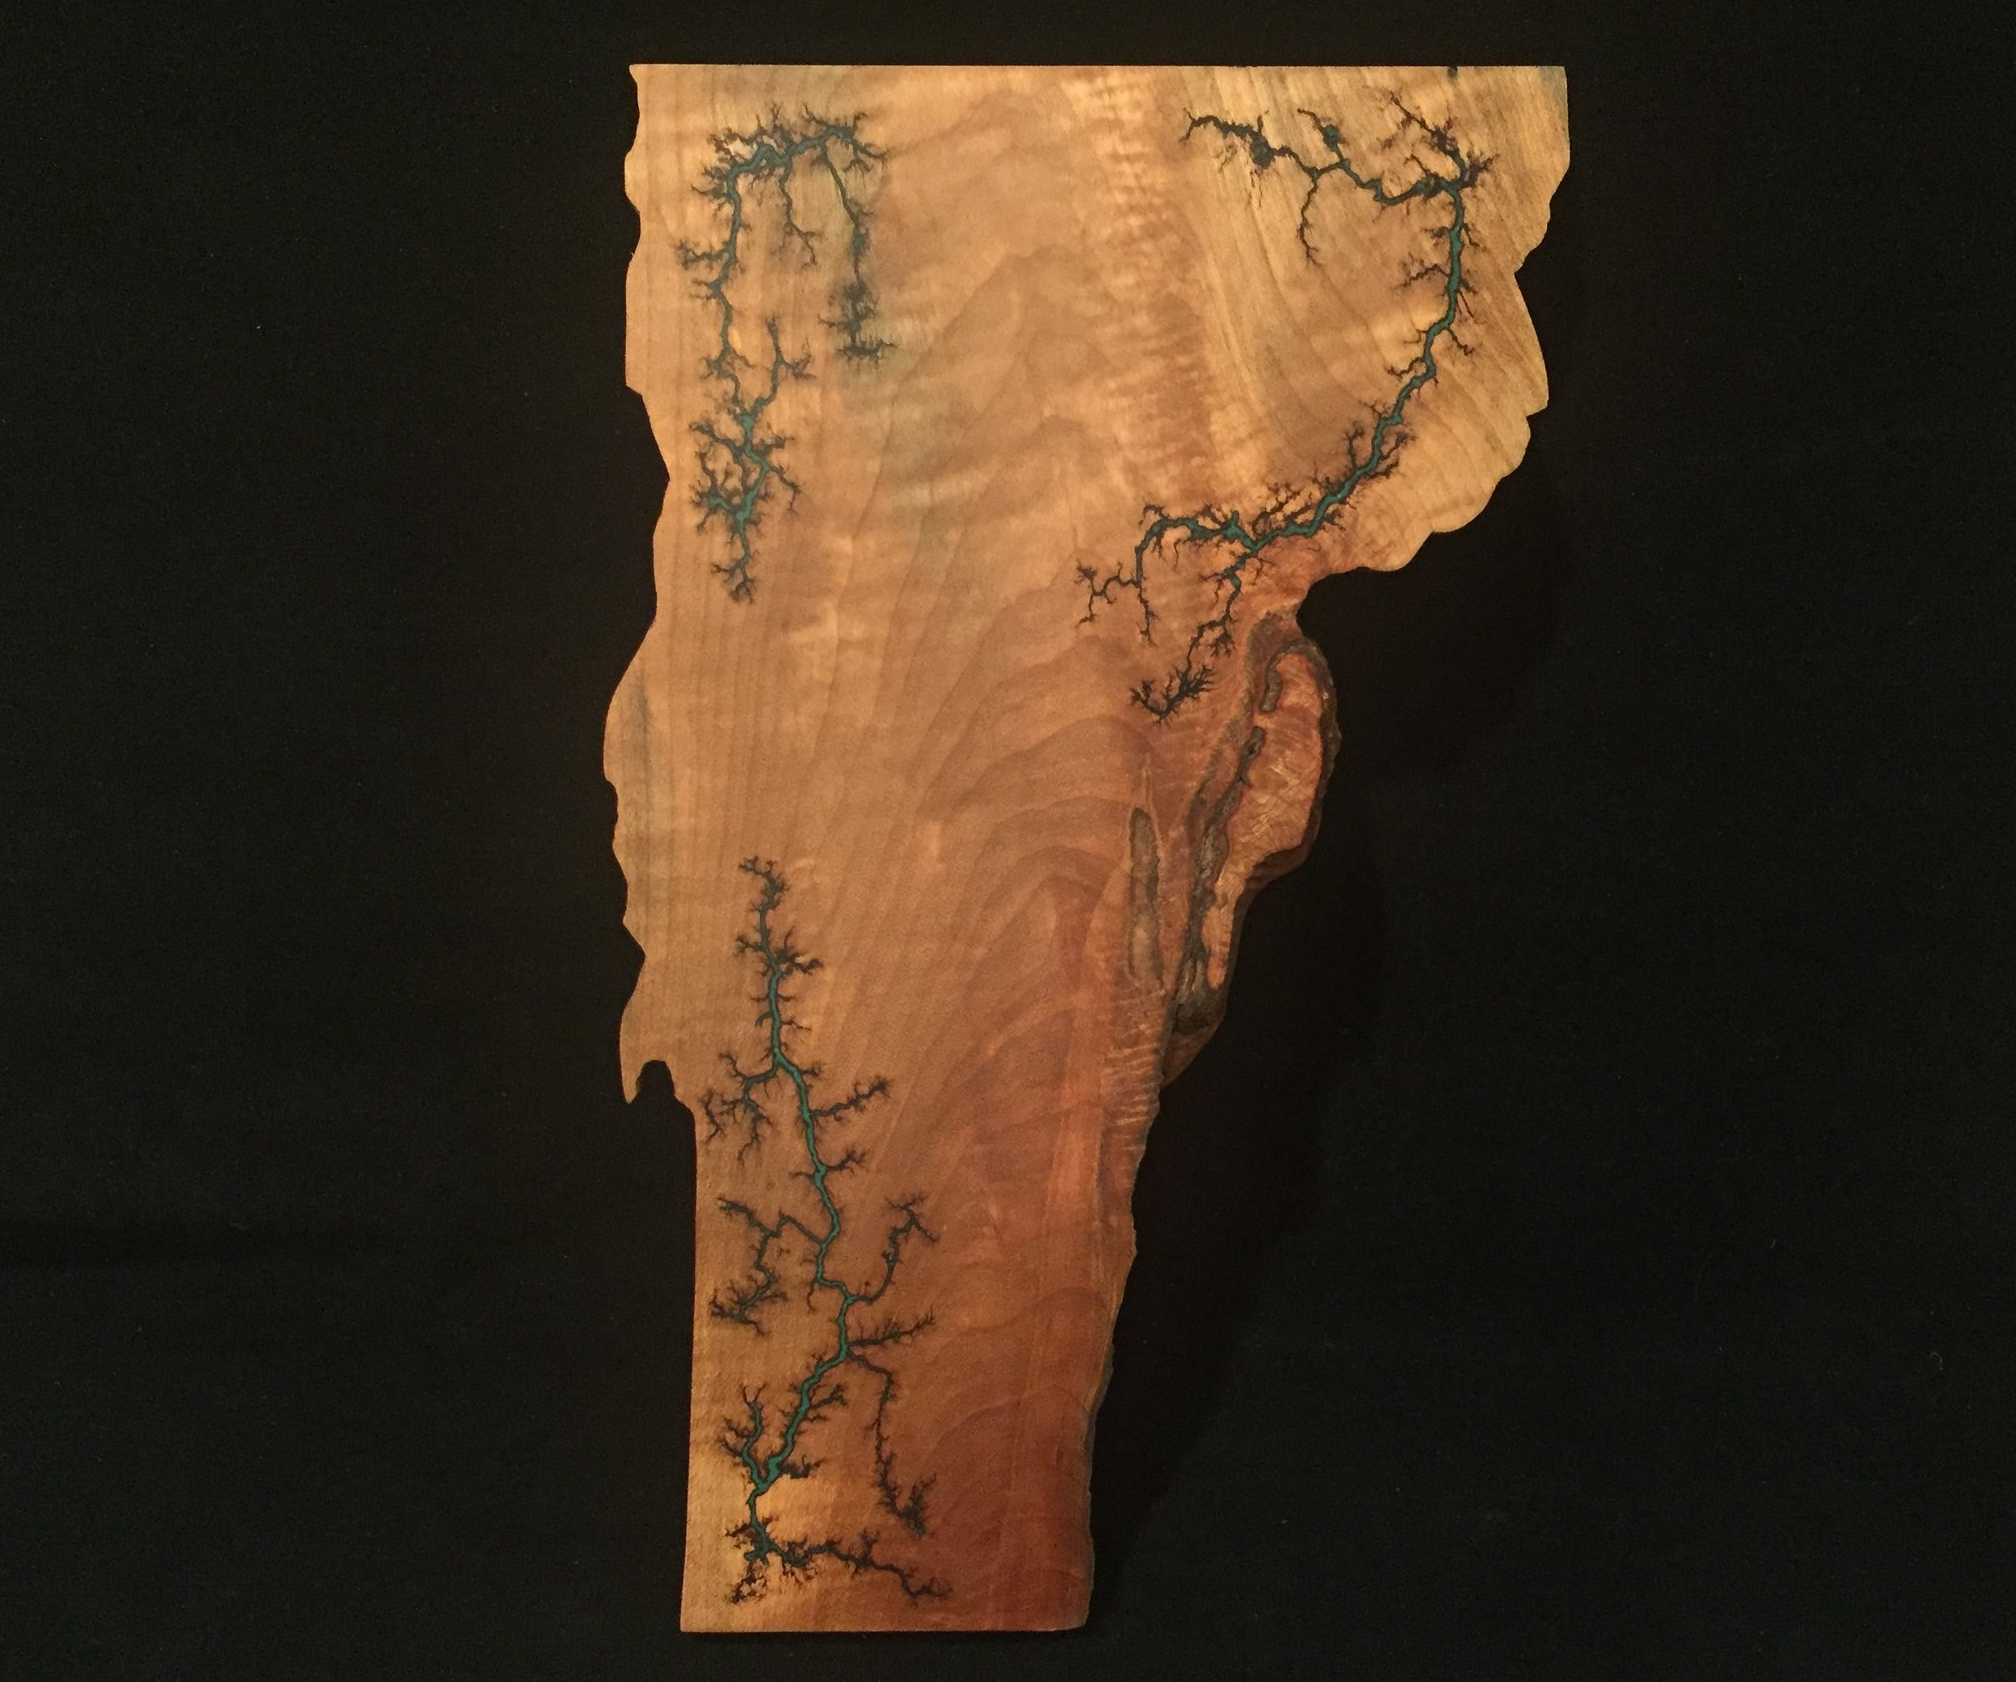 Lichtenberg Boards - This Vermont-shaped serving board is made out of hard maple sourced from none other than VT, and features a Lichtenberg figure etching done with 12,000 volts of electricity. The etching is then inlayed with crushed chrysocolla stone, and sealed with epoxy. The entire piece is then sanded to a glass like finish and coated with beeswax and mineral oil, making this serving board ready to be used. These are currently available at the Burlington Farmer's Market, the Champlain Islands Farmer's Market, in our online store, or by special order.